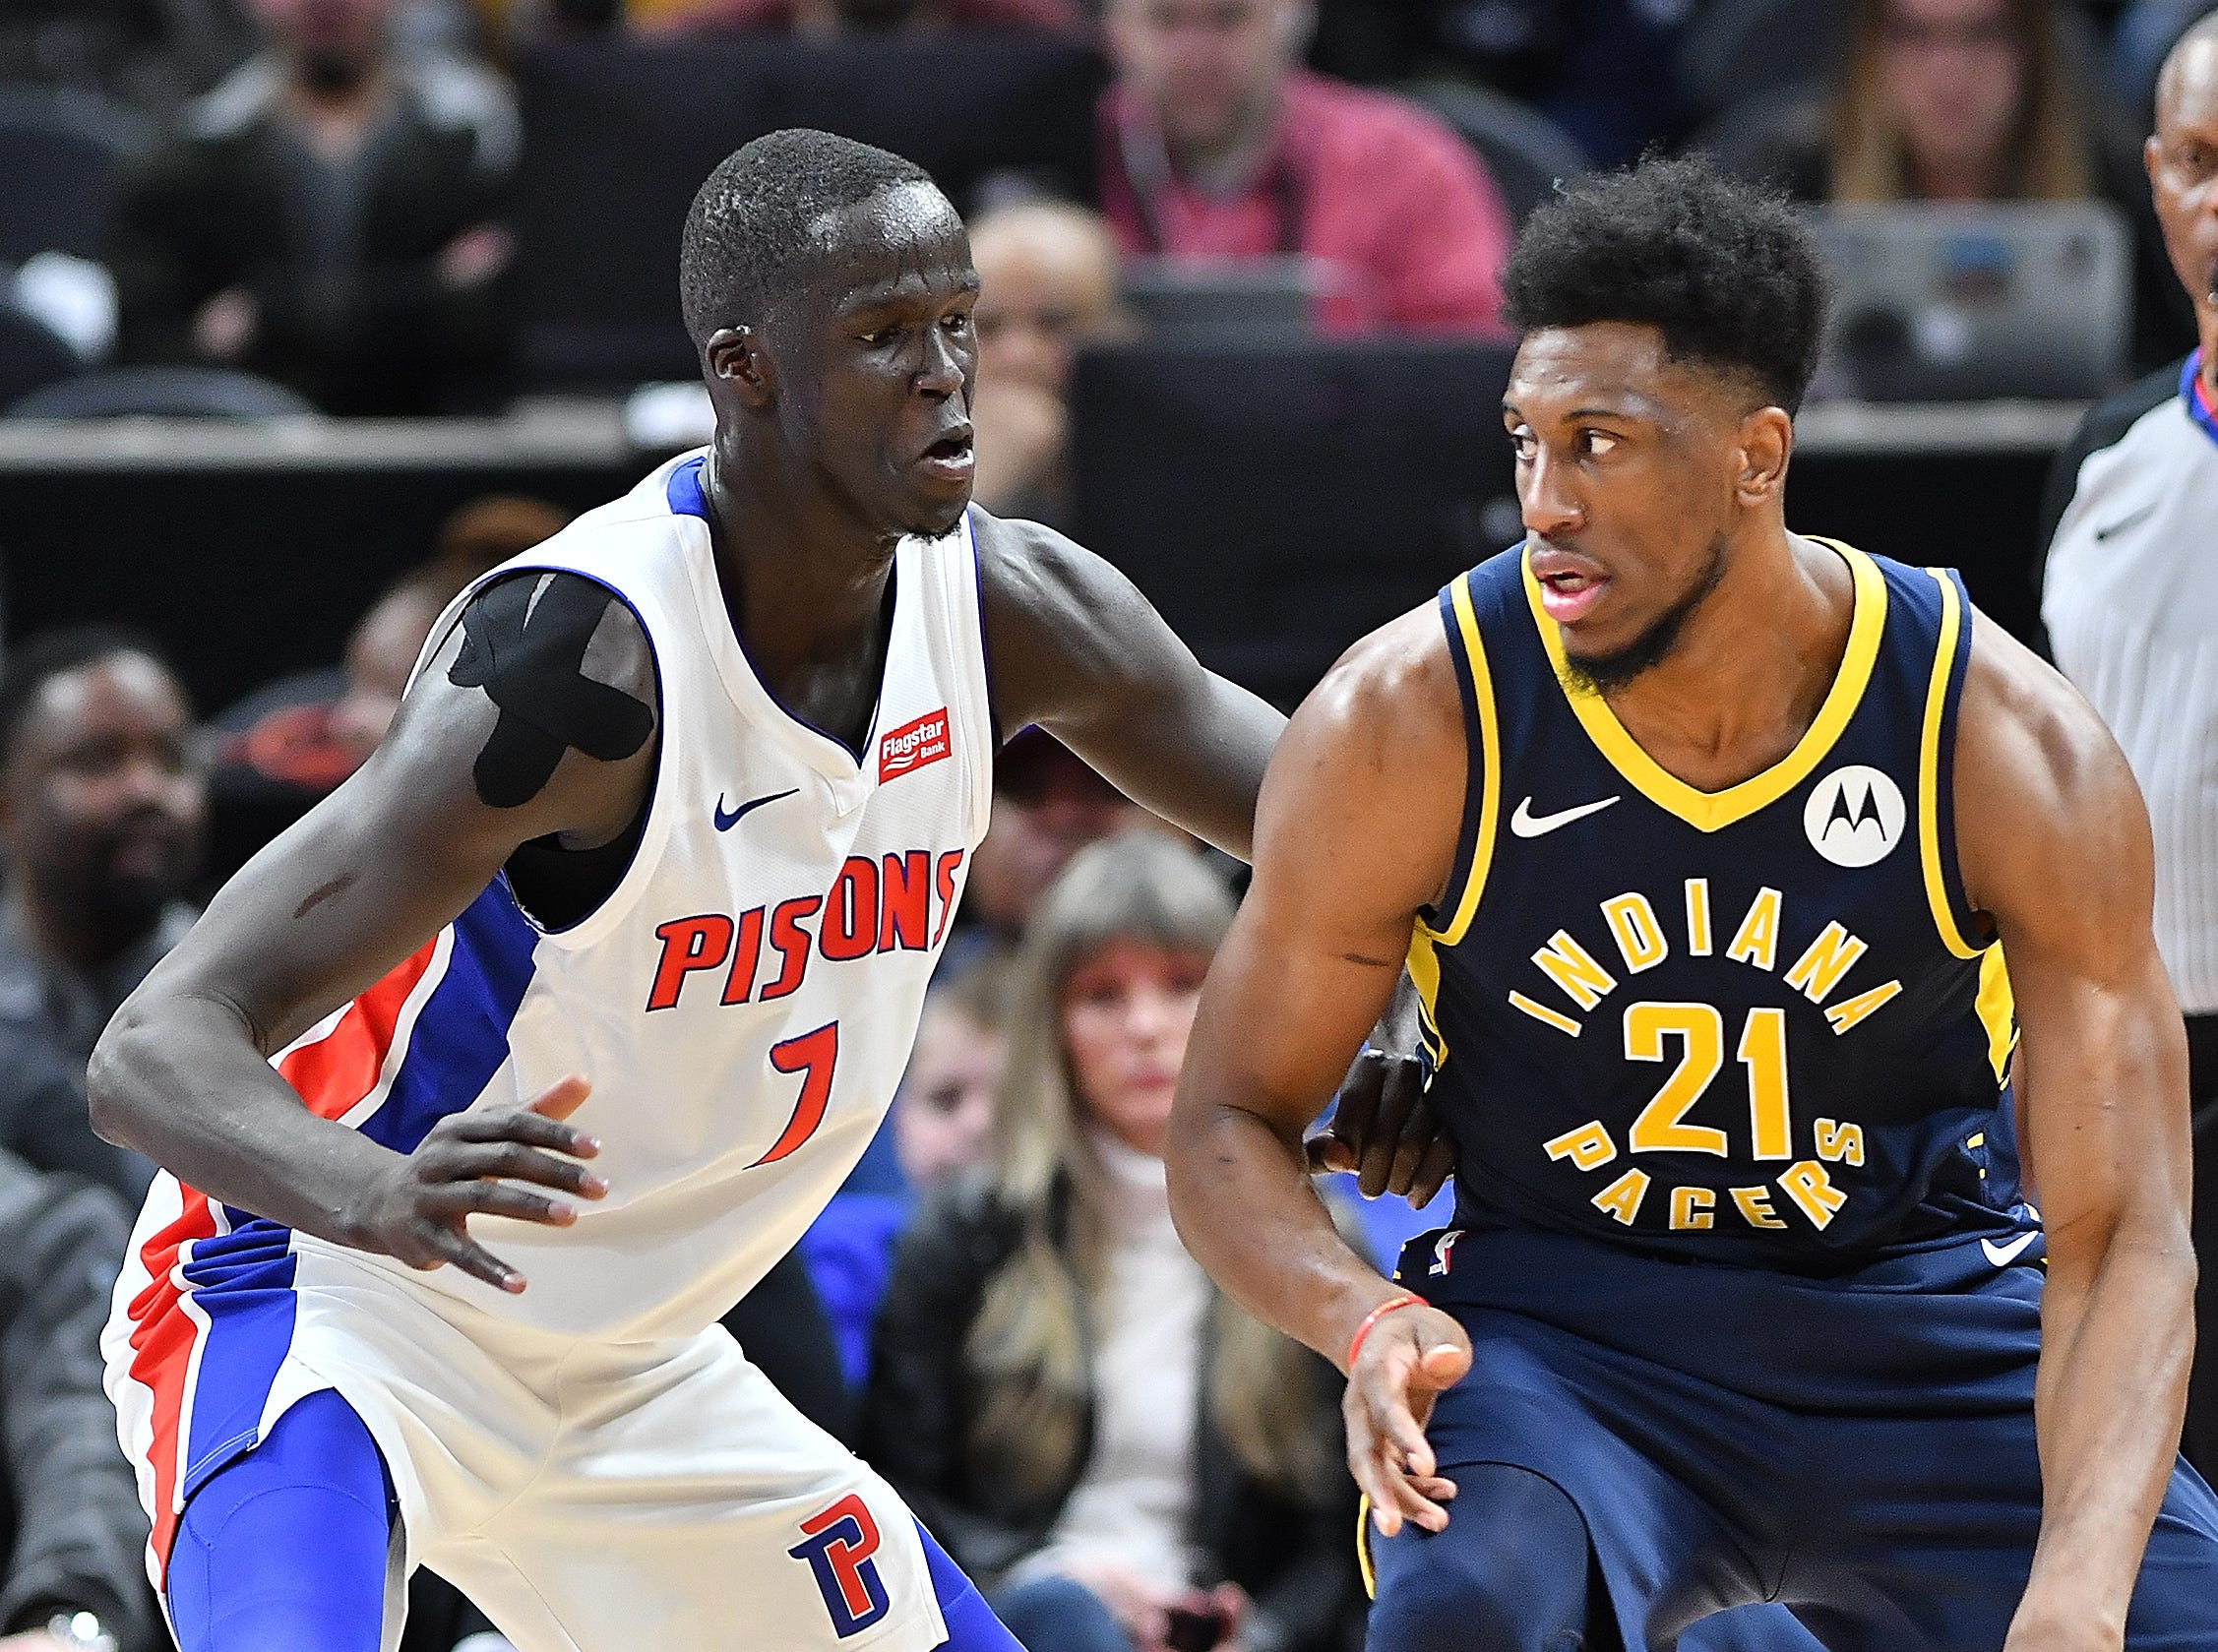 Pacers' Thaddeus Young looks for room around Pistons' Thon Maker in the second quarter.